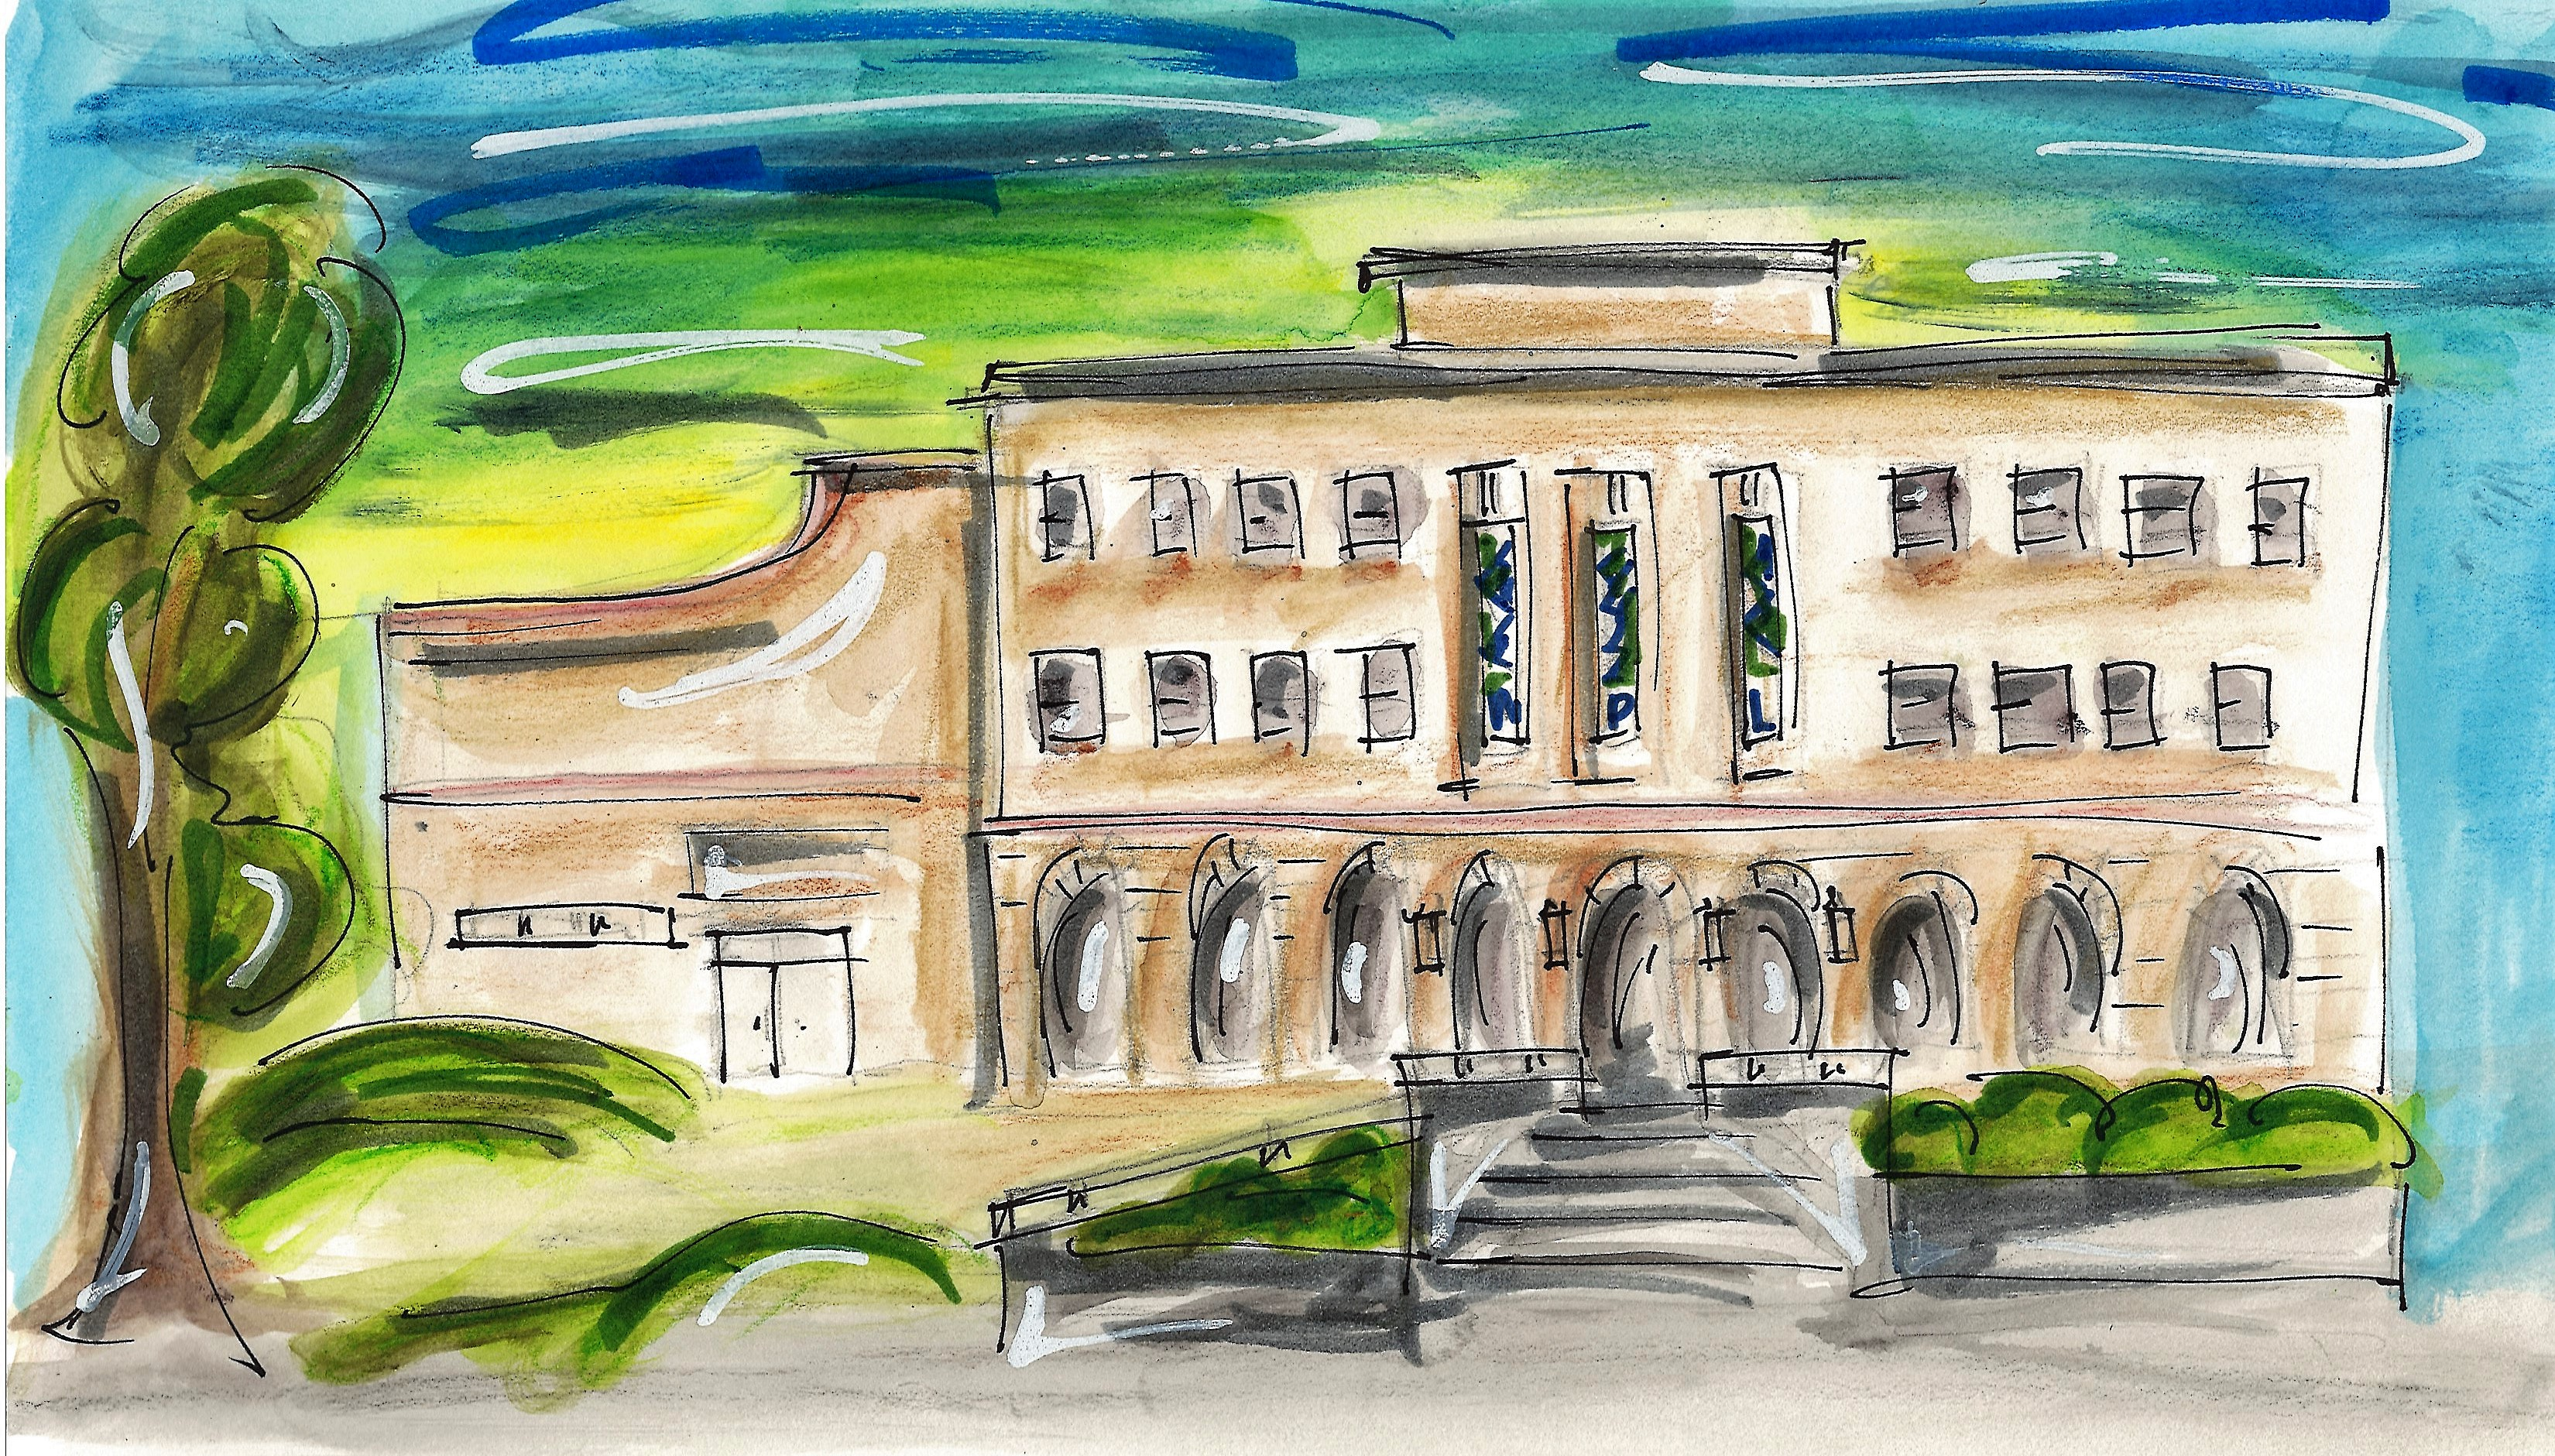 Waterloo Public Library watercolor